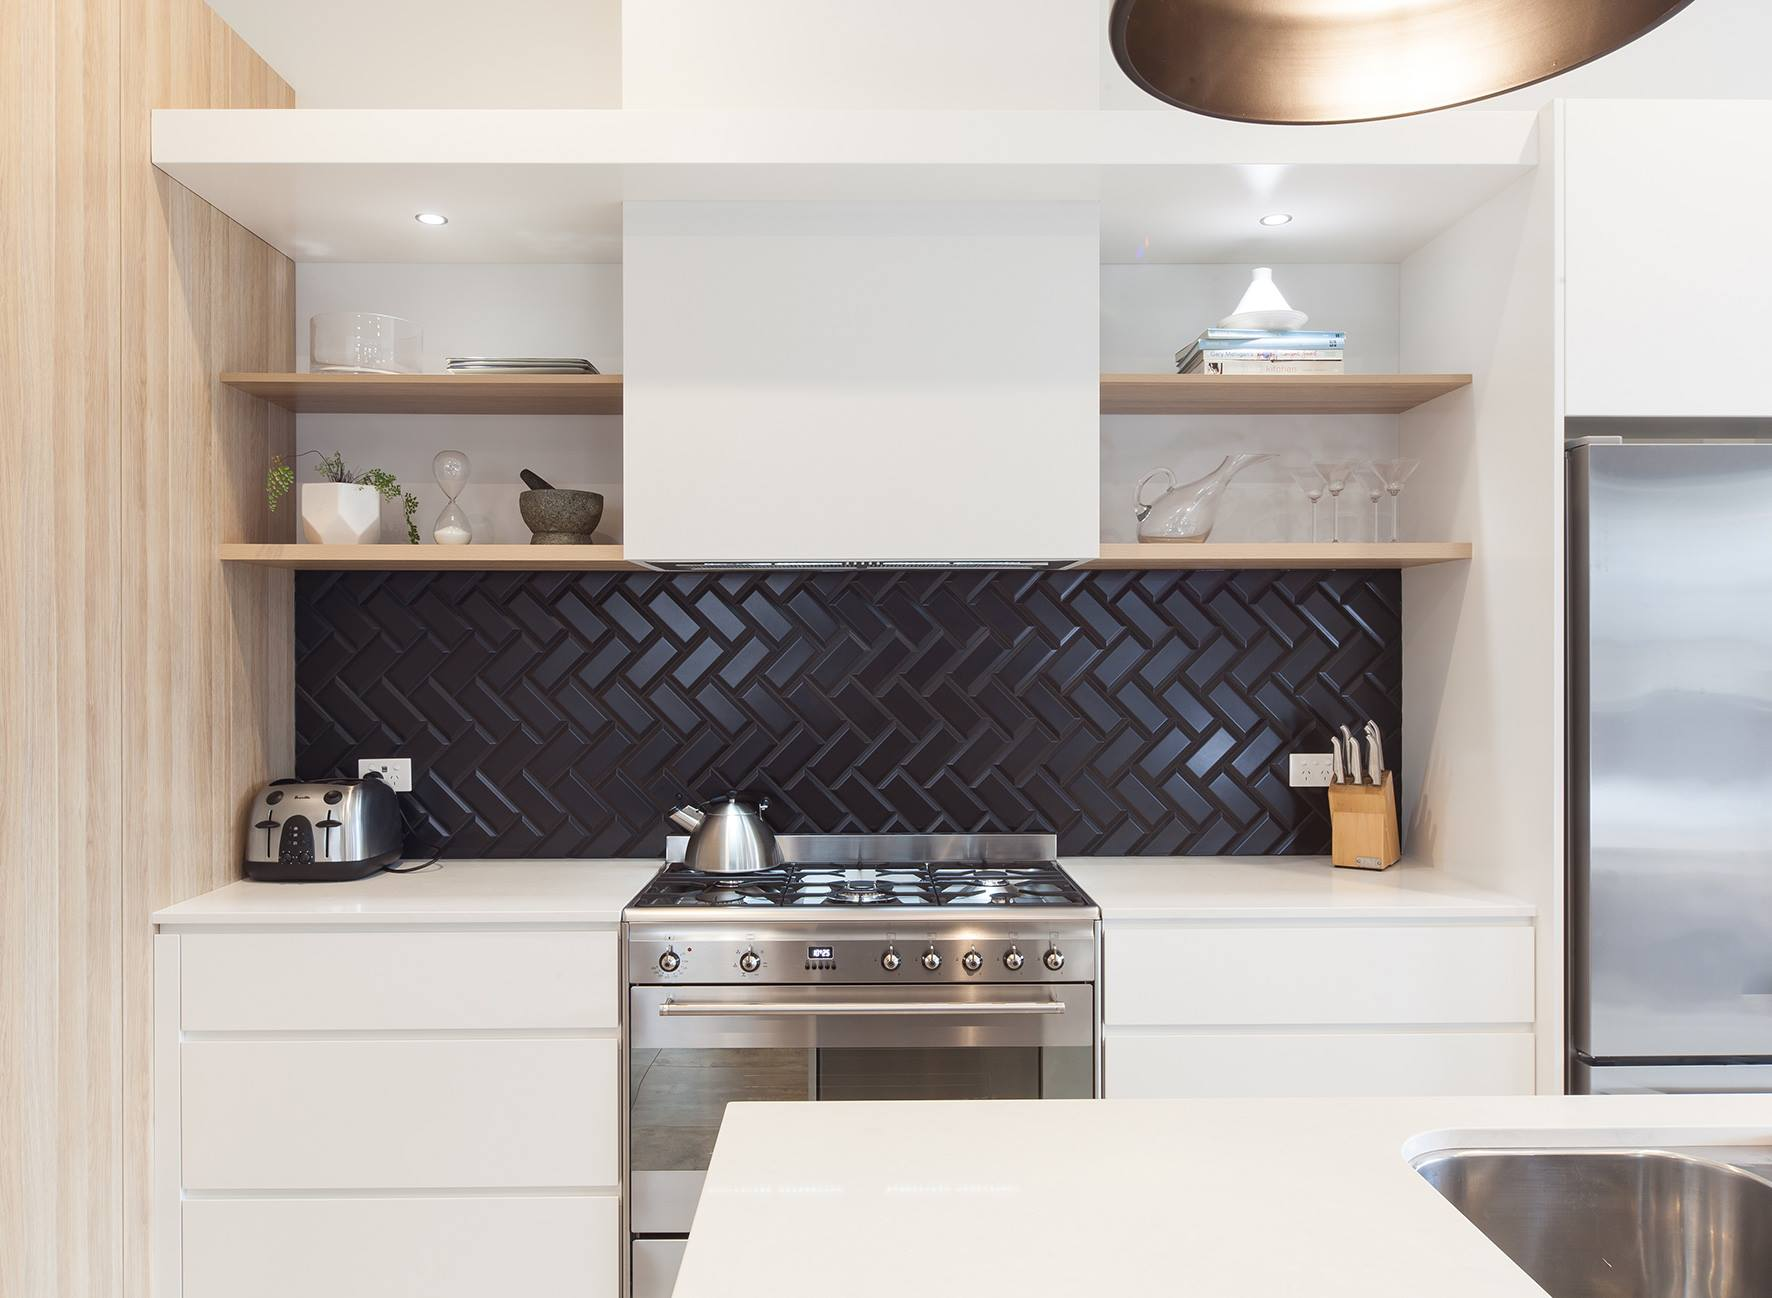 Kitchen Trend We Love: Black Tiles with Black Grout ...